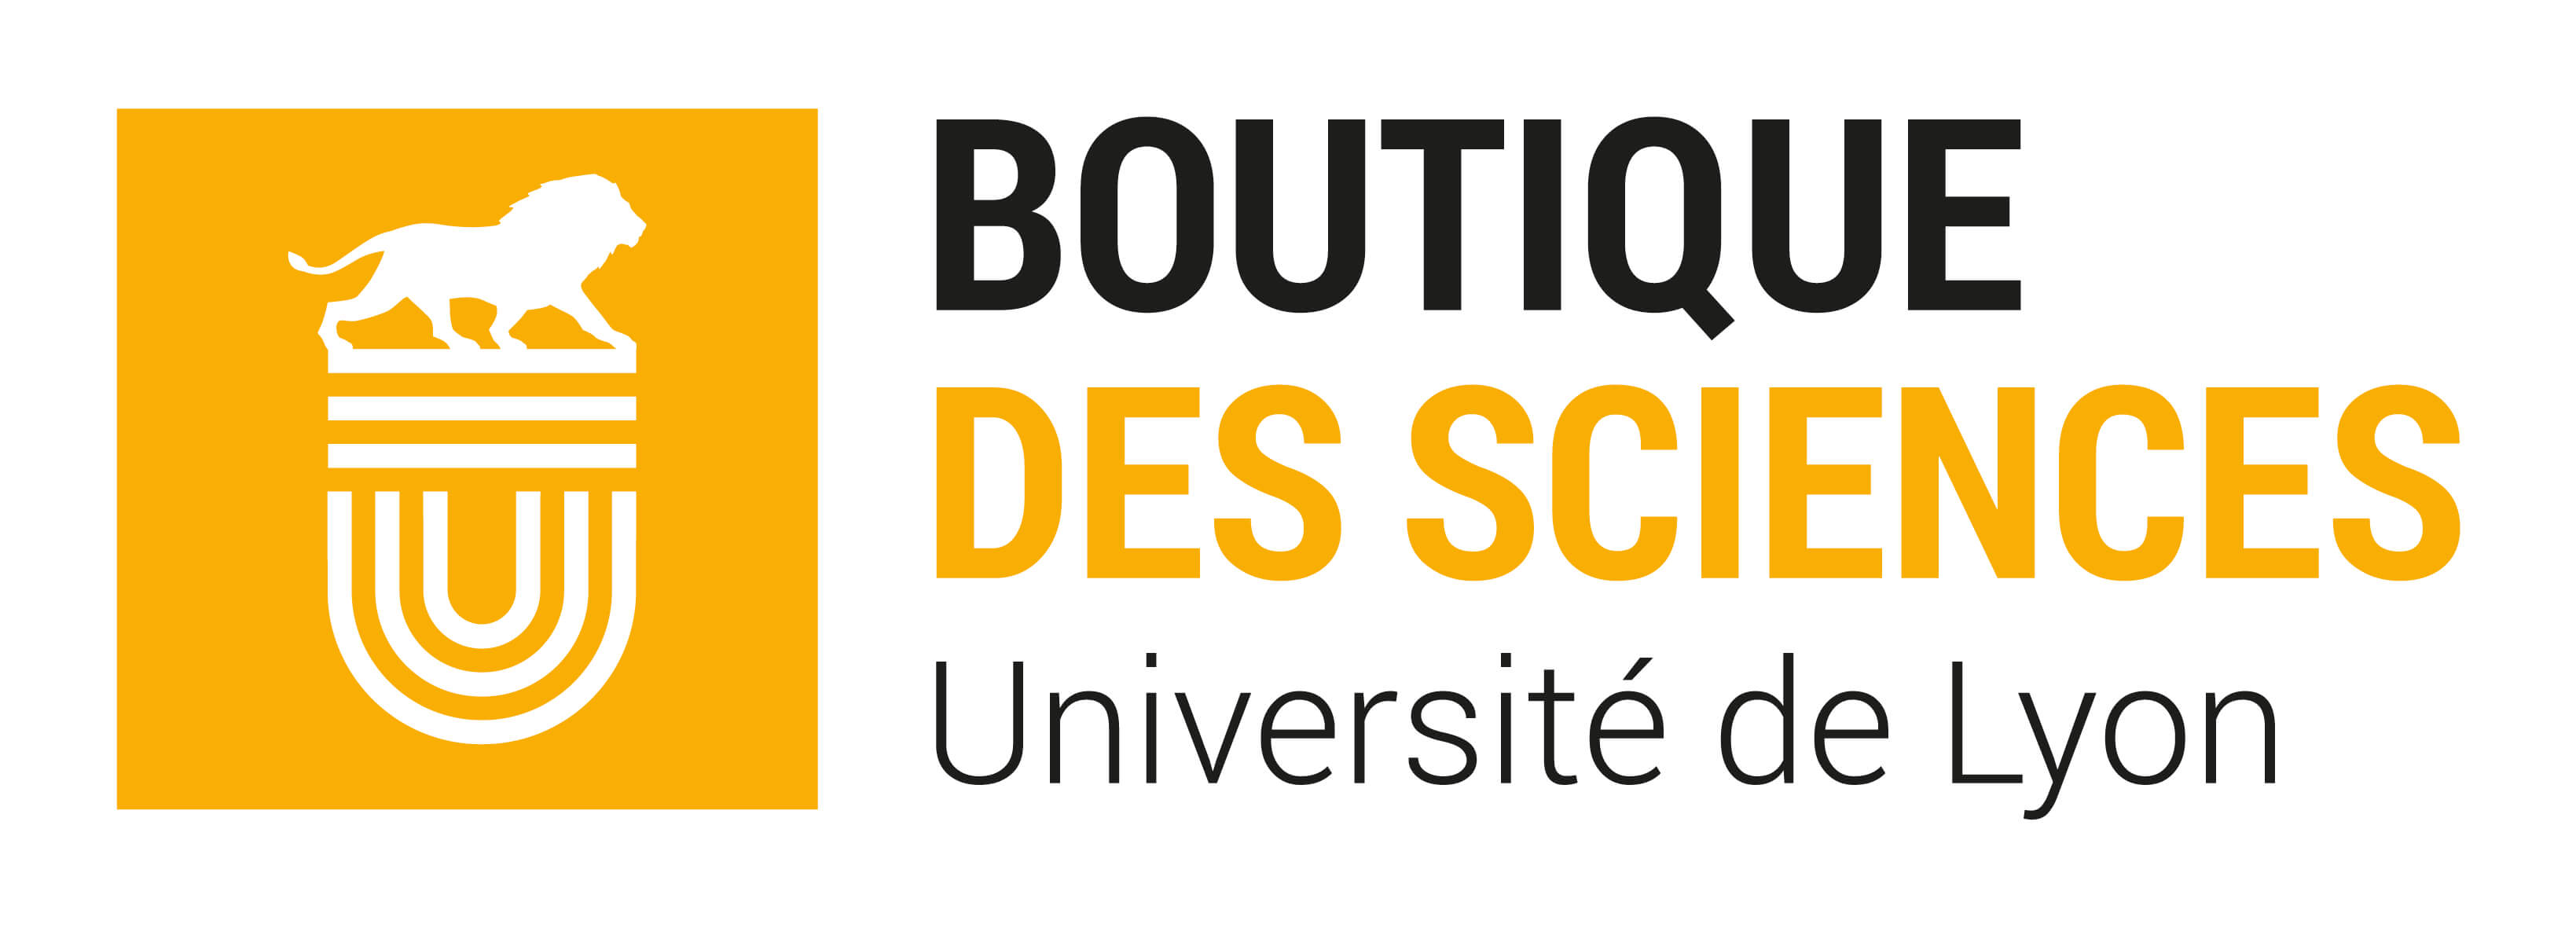 logo boutique des sciences 2019